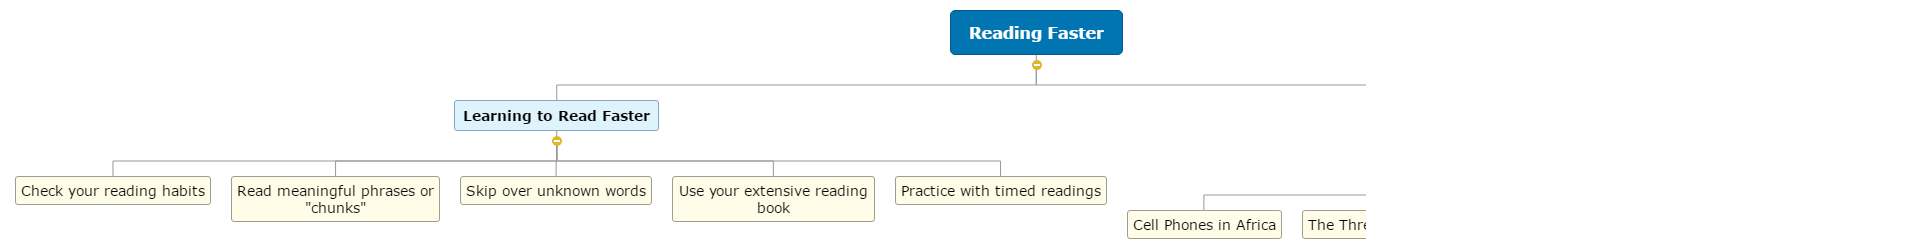 Reading Faster Mind Map